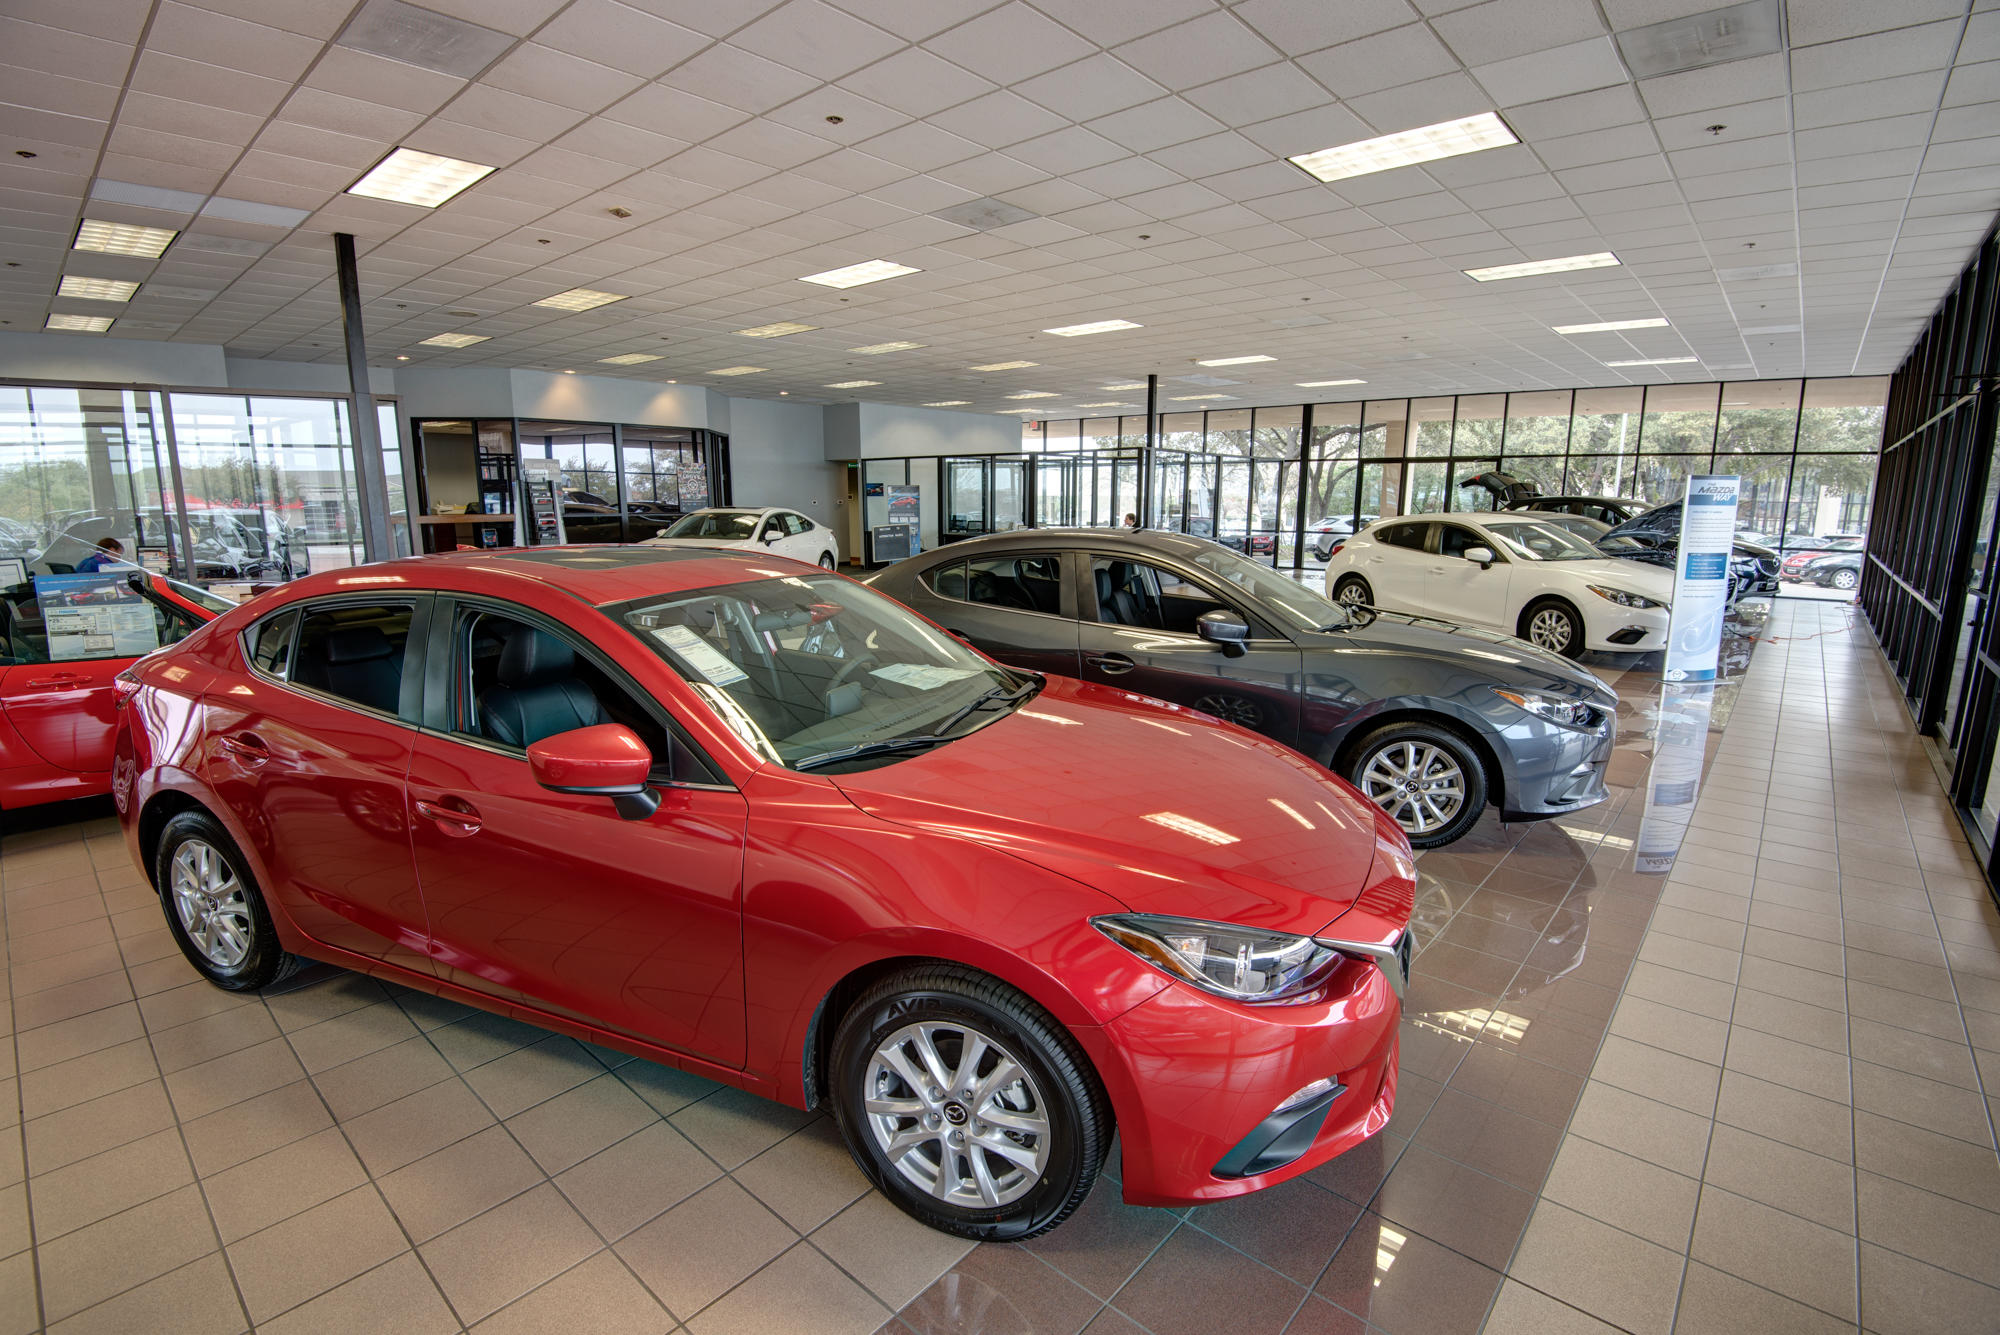 AutoNation Ford Fort Worth 5000 Bryant Irvin Rd, Fort Worth, TX 76132    YP.com